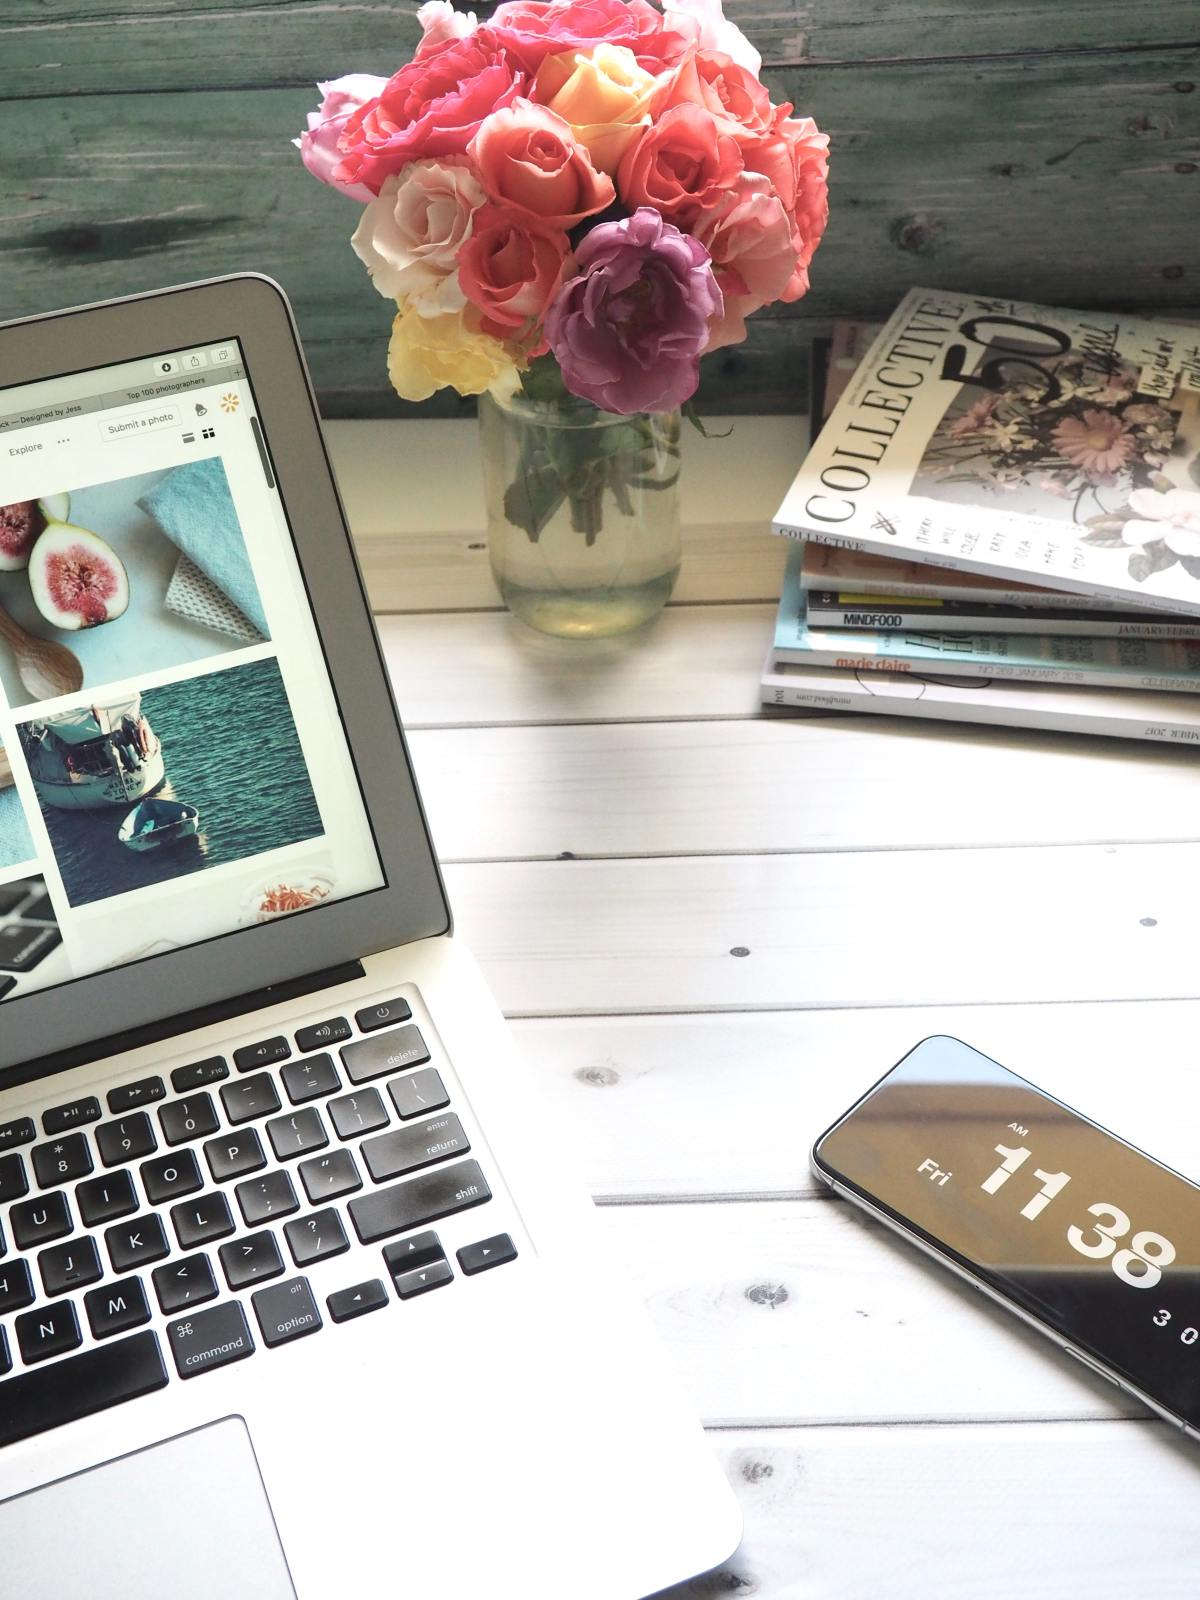 I never want to be a full time blogger